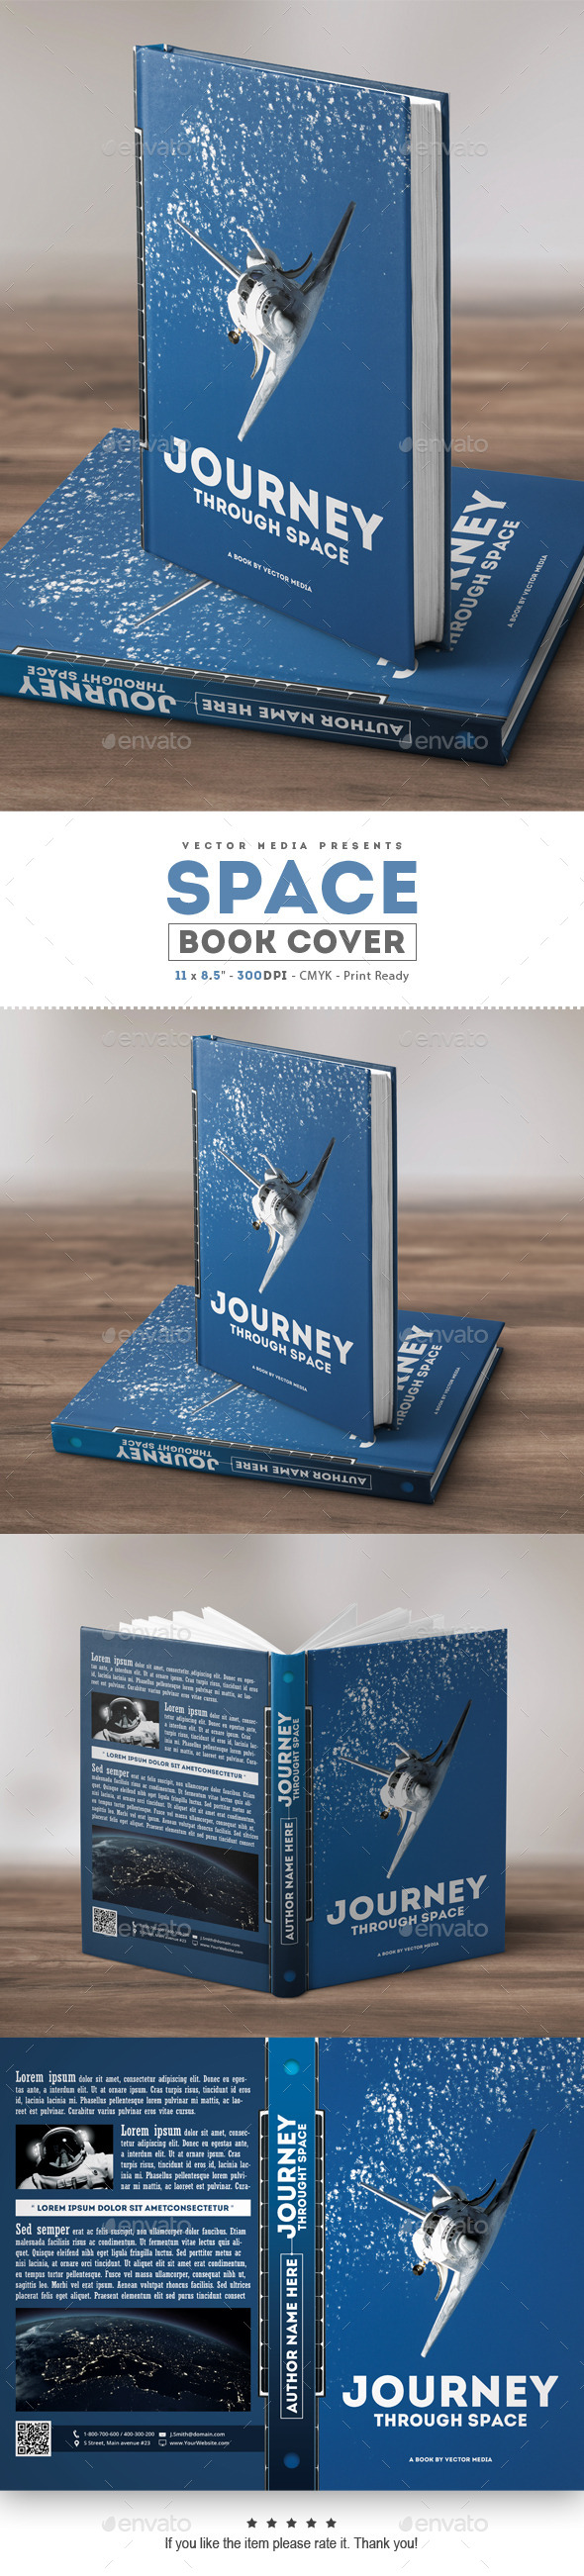 Book Cover Graphicriver : Space book cover miscellaneous print templates